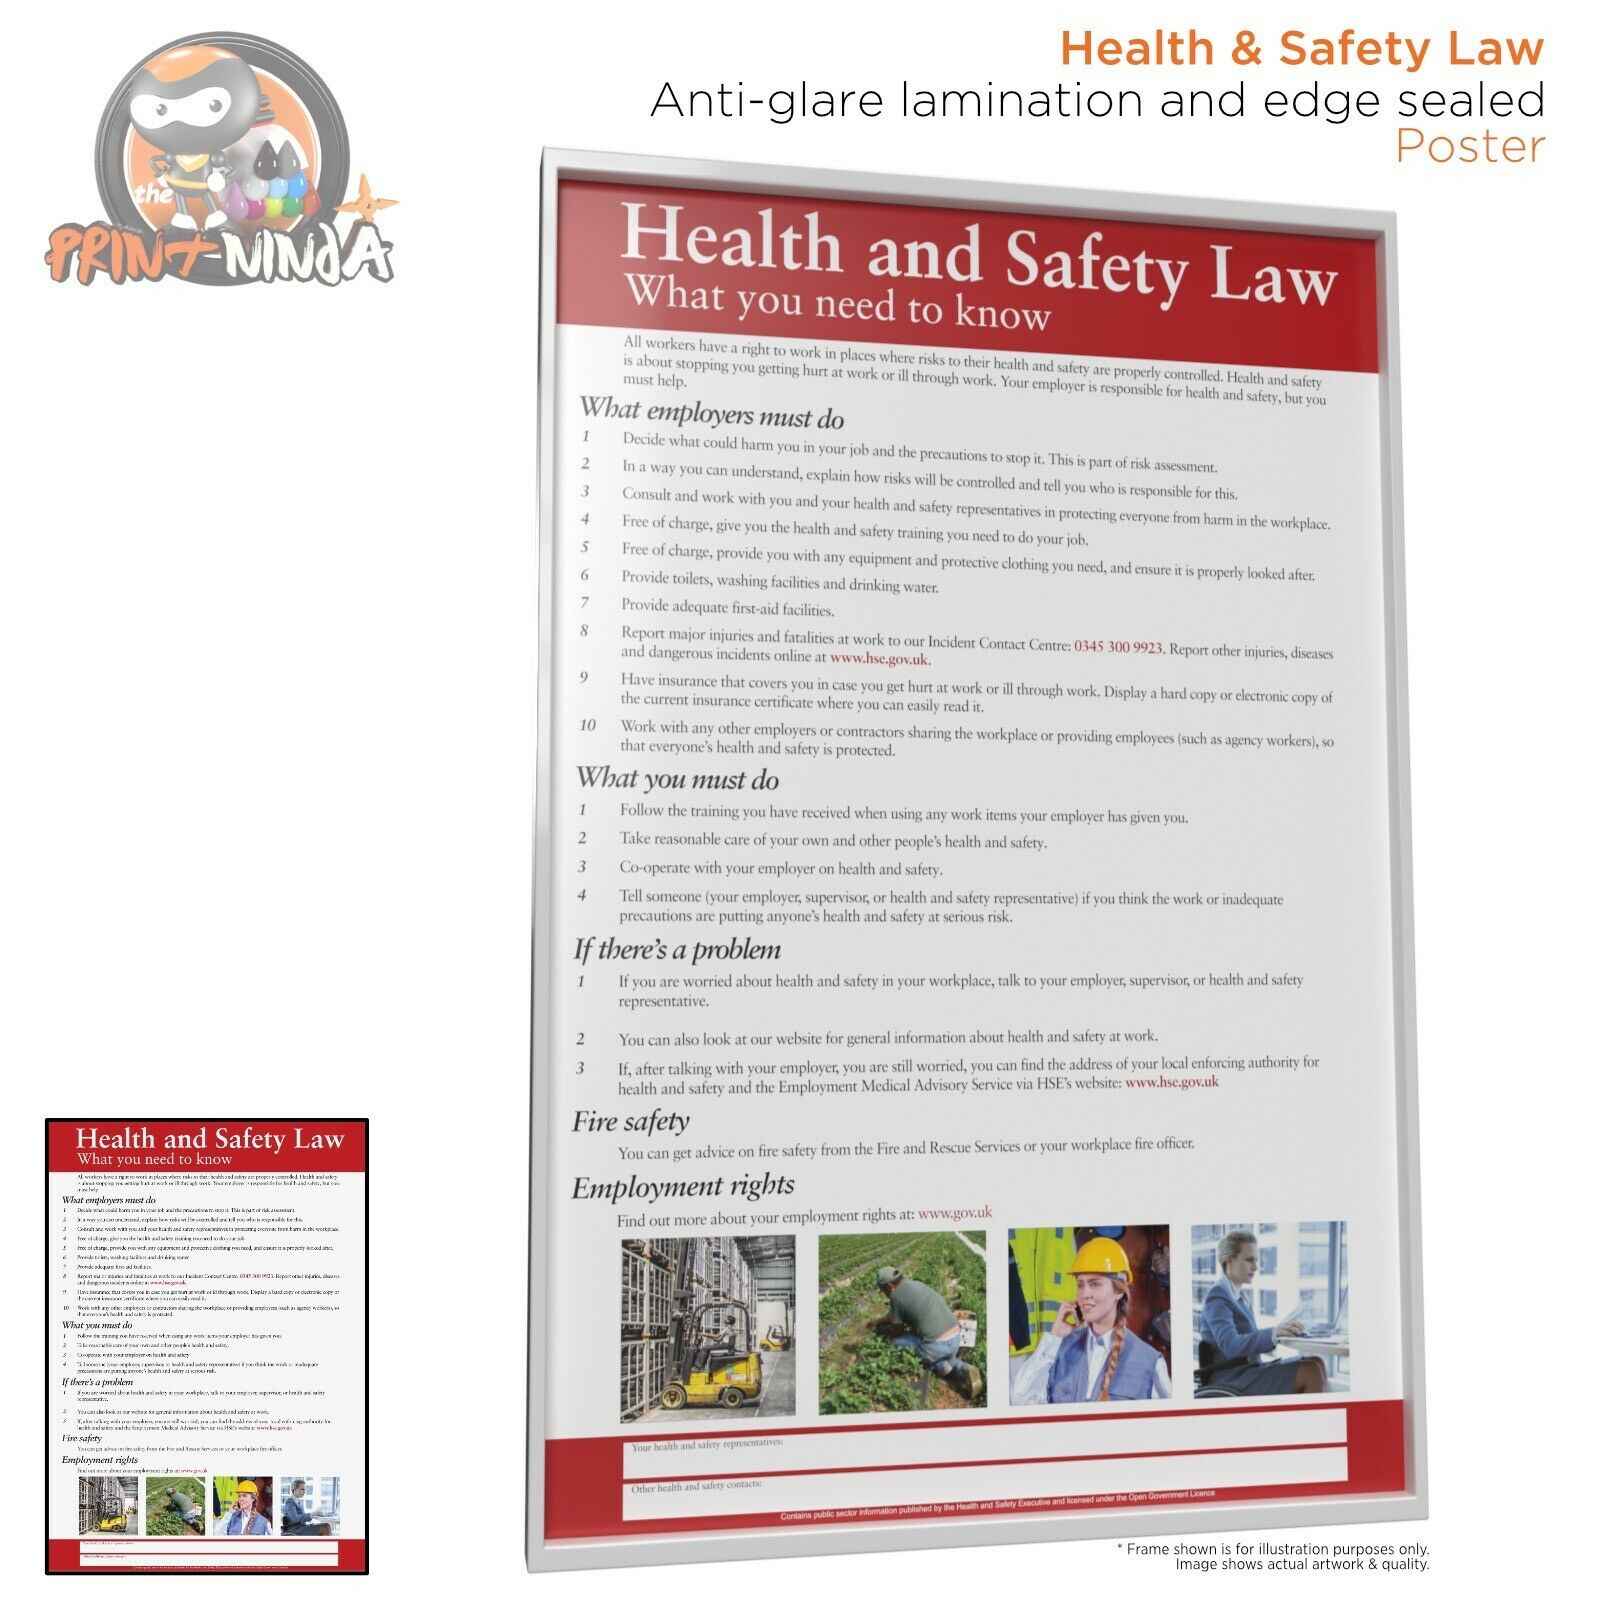 Health and Safety Law Poster A2 A3 A4 (anti-glare lamination & edge sealed)